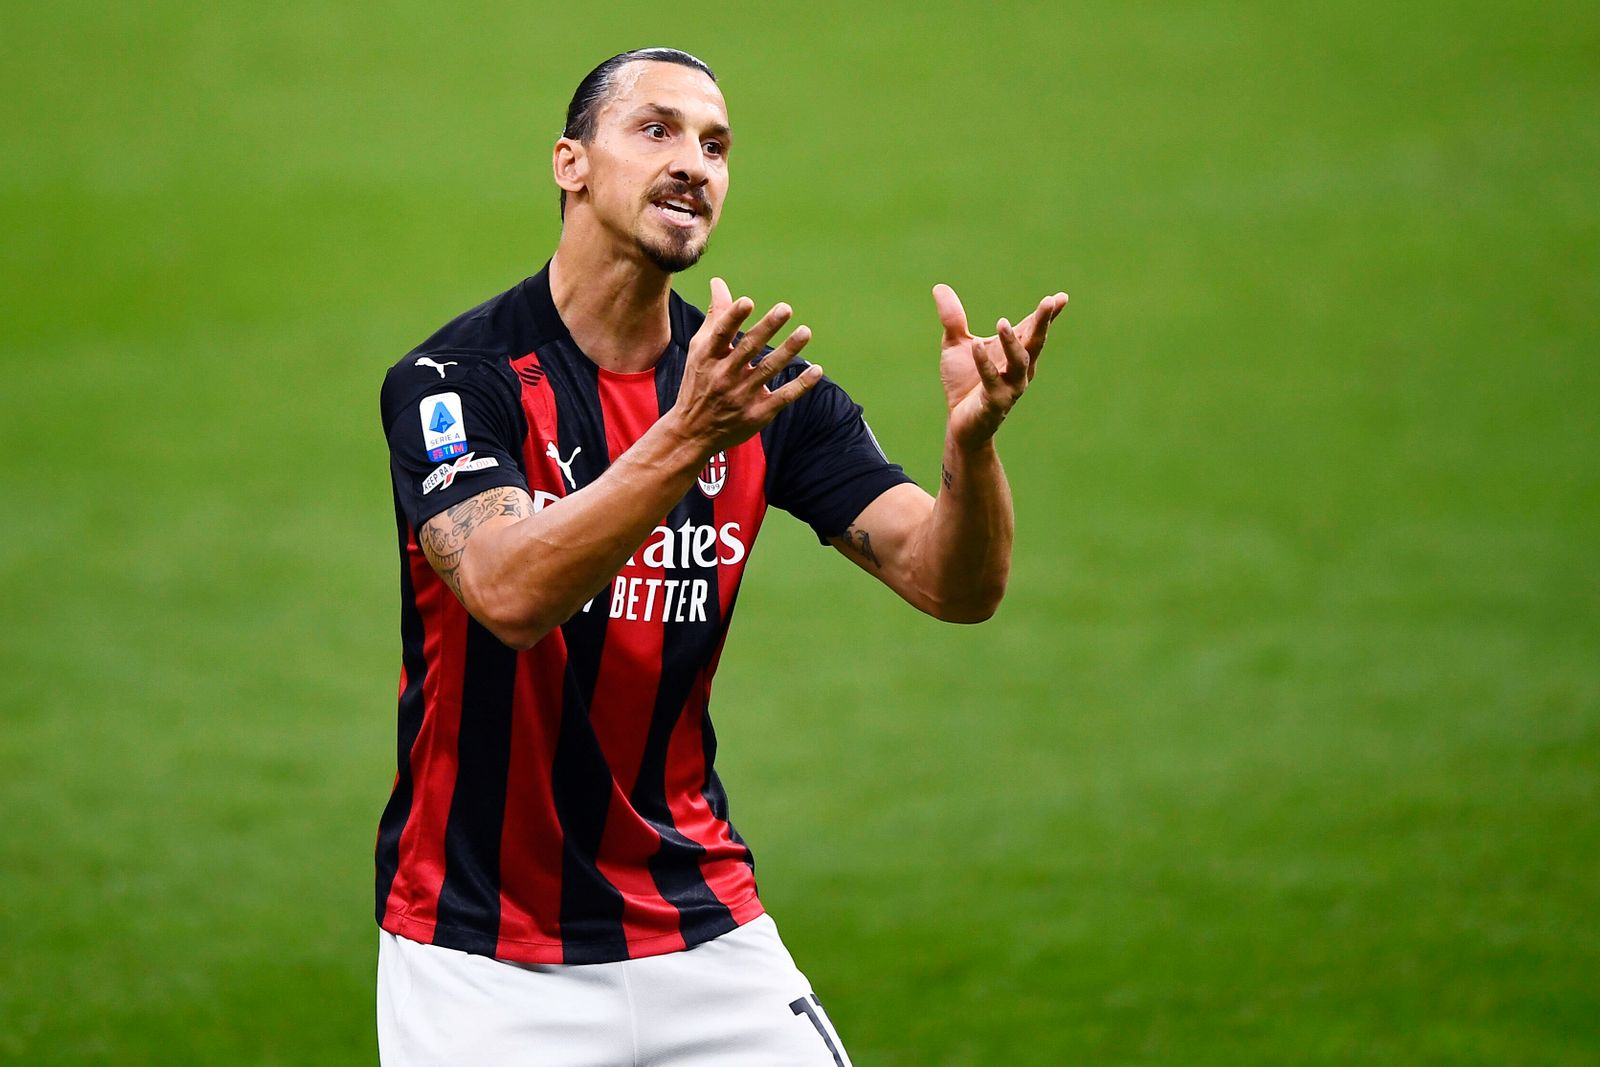 200921 Zlatan Ibrahimovic of AC Milan during the Serie A game between AC Milan and Bologna on September 21, 2020 in Mil